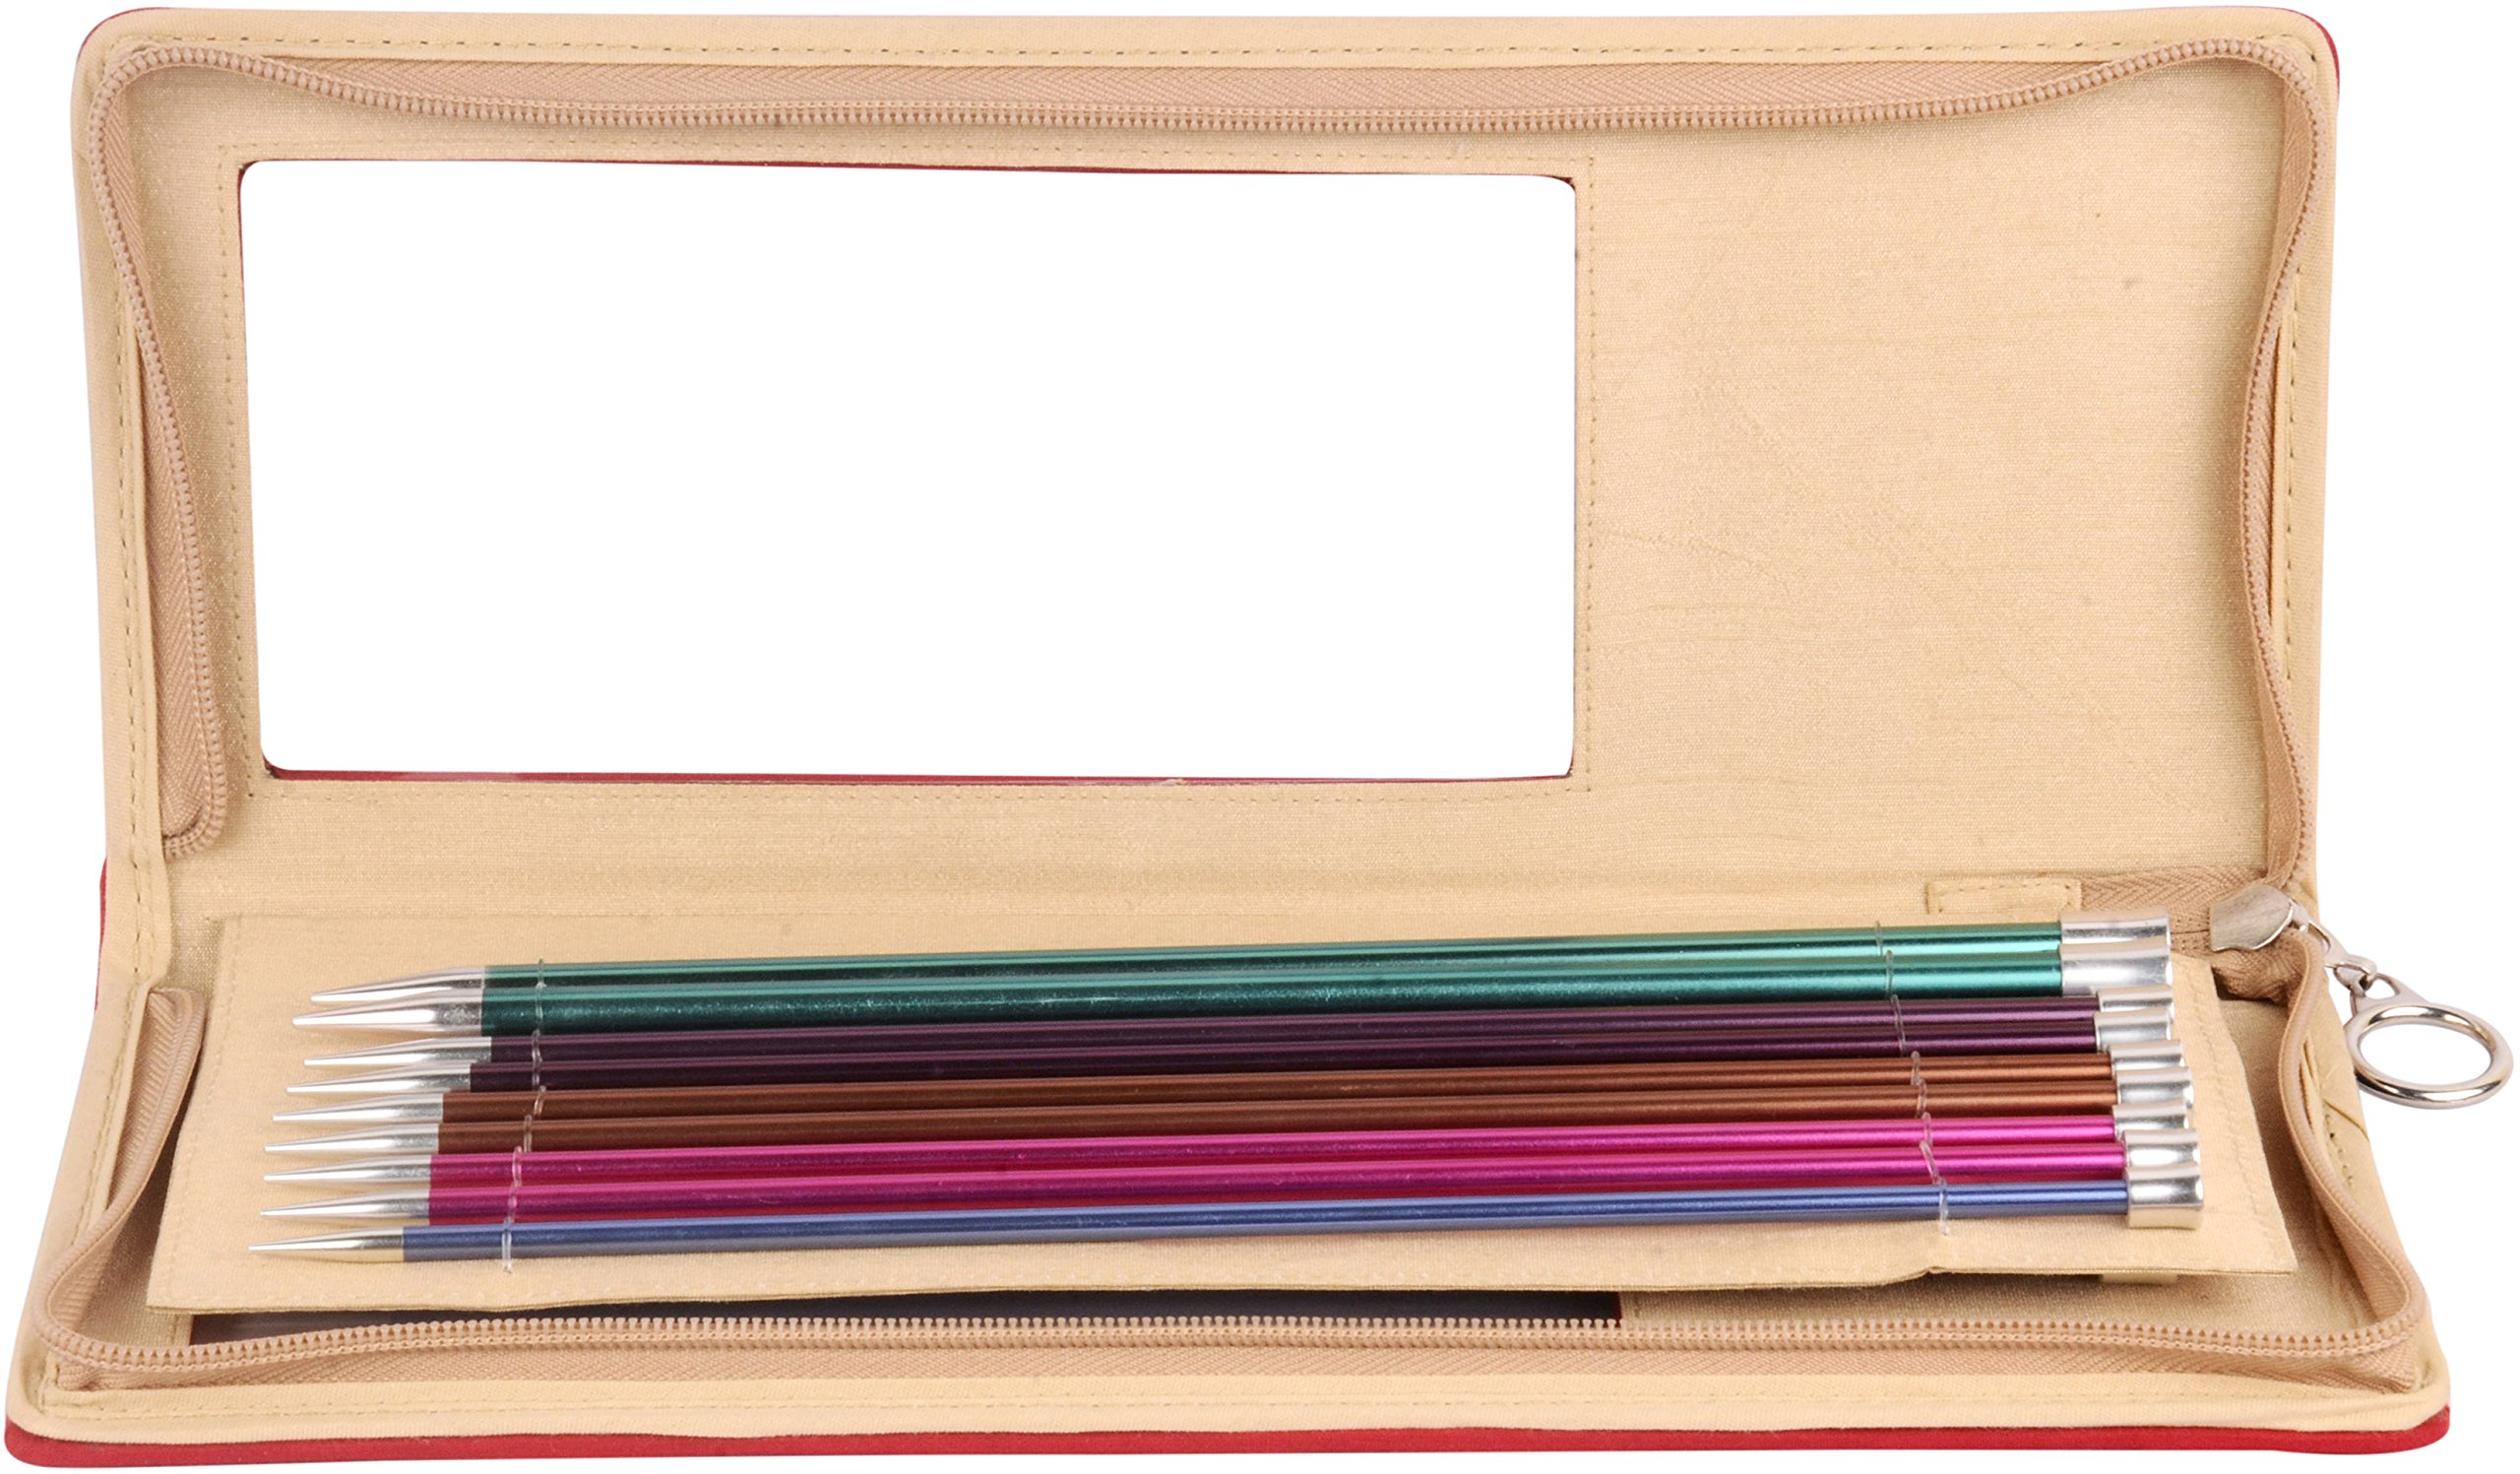 Knitter's Pride KP140305 Zing Straight Needles Set 14'', Assorted